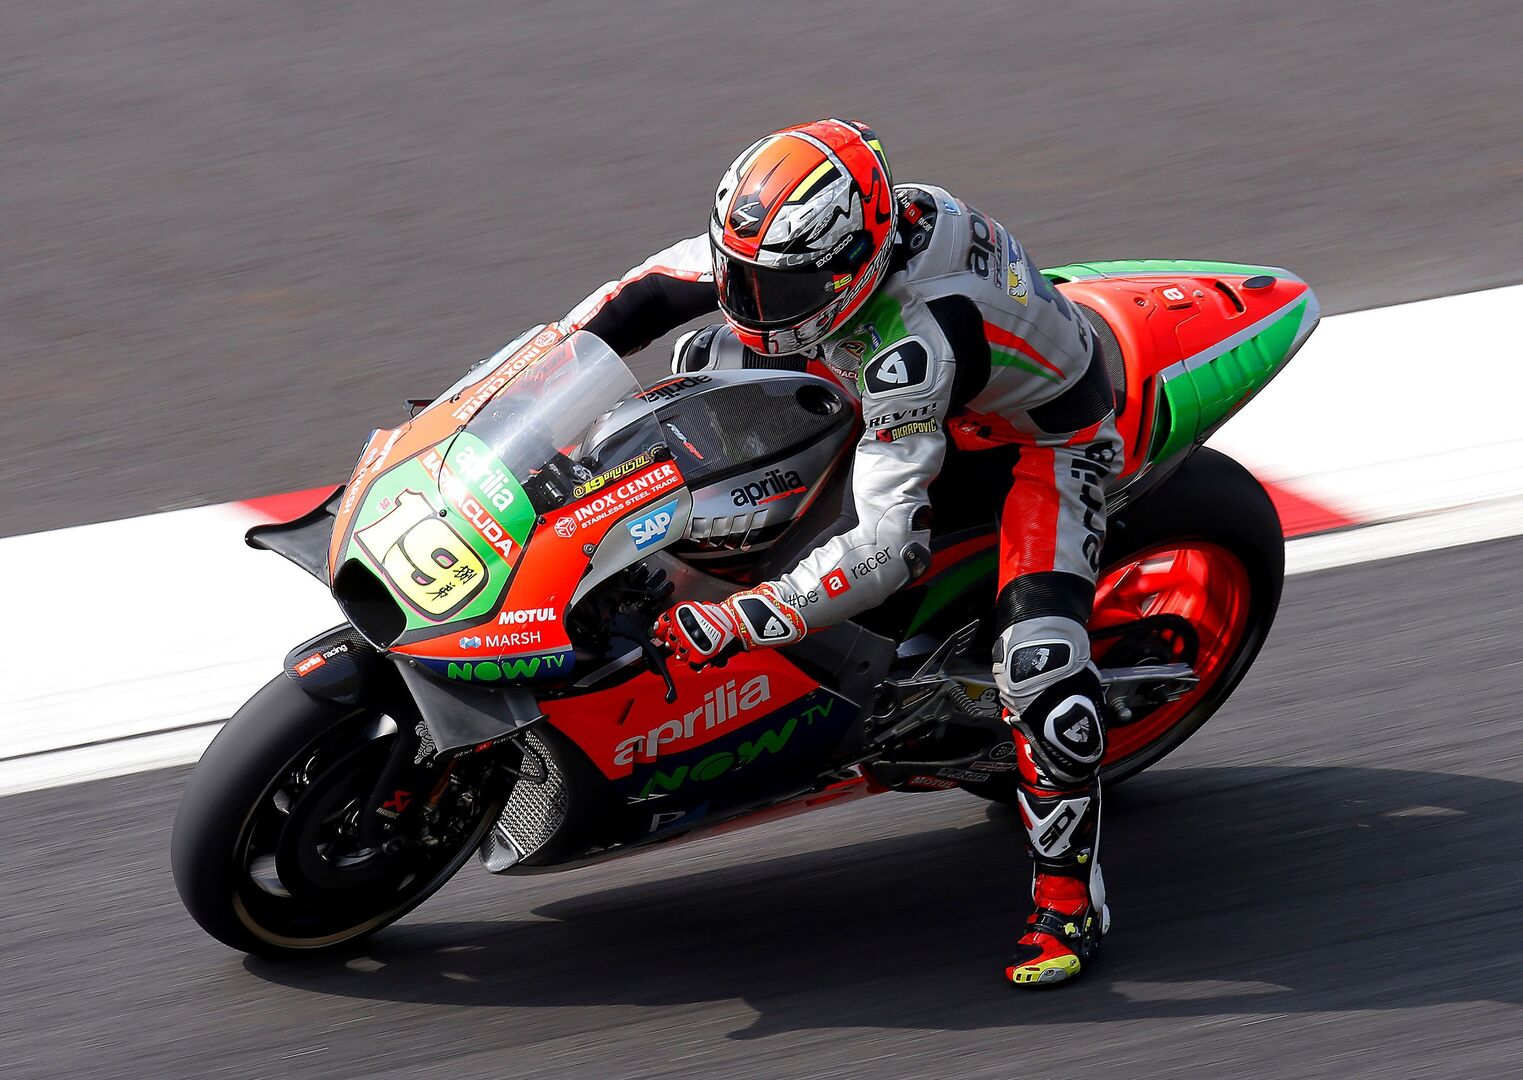 """MotoGP, Bautista """"I had realized even yesterday that I was competitive""""   GPone.com"""